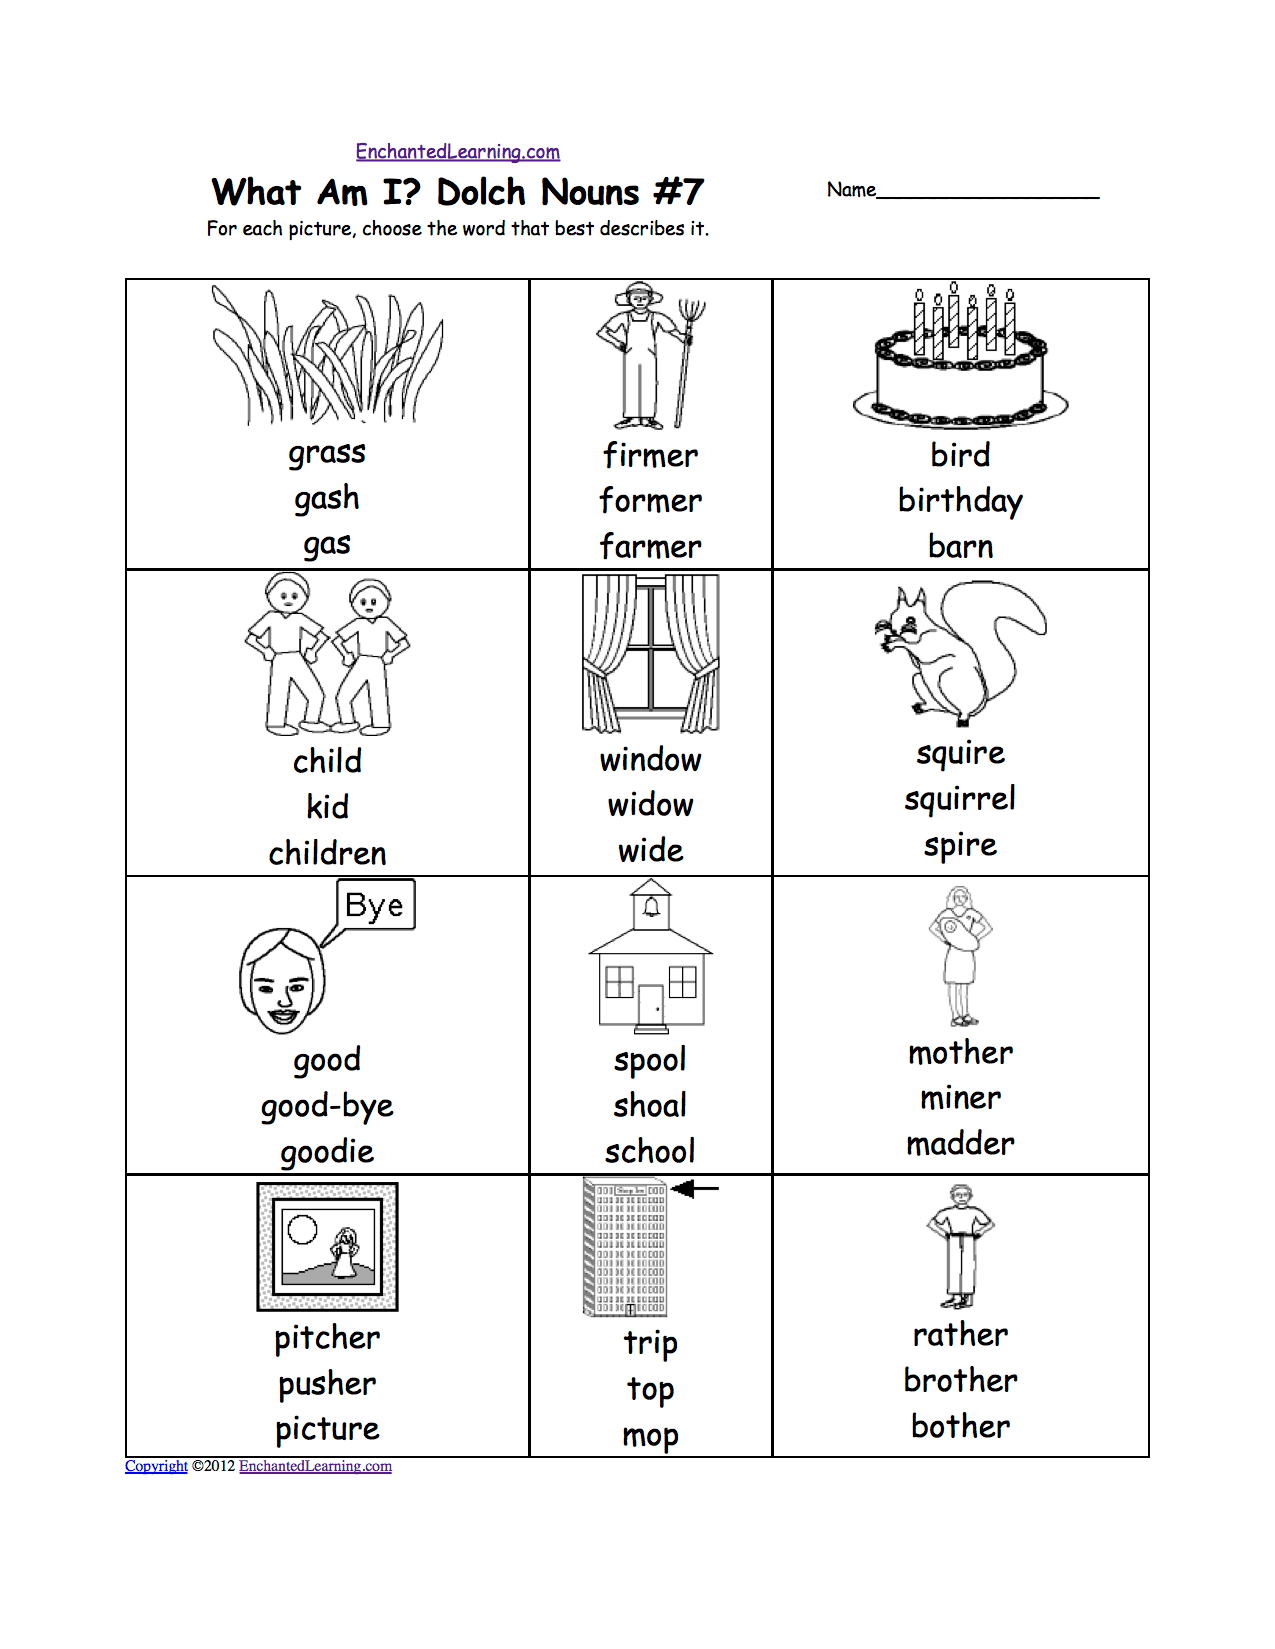 Dolch Nouns Multiple Choice Spelling Words At Enchantedlearning